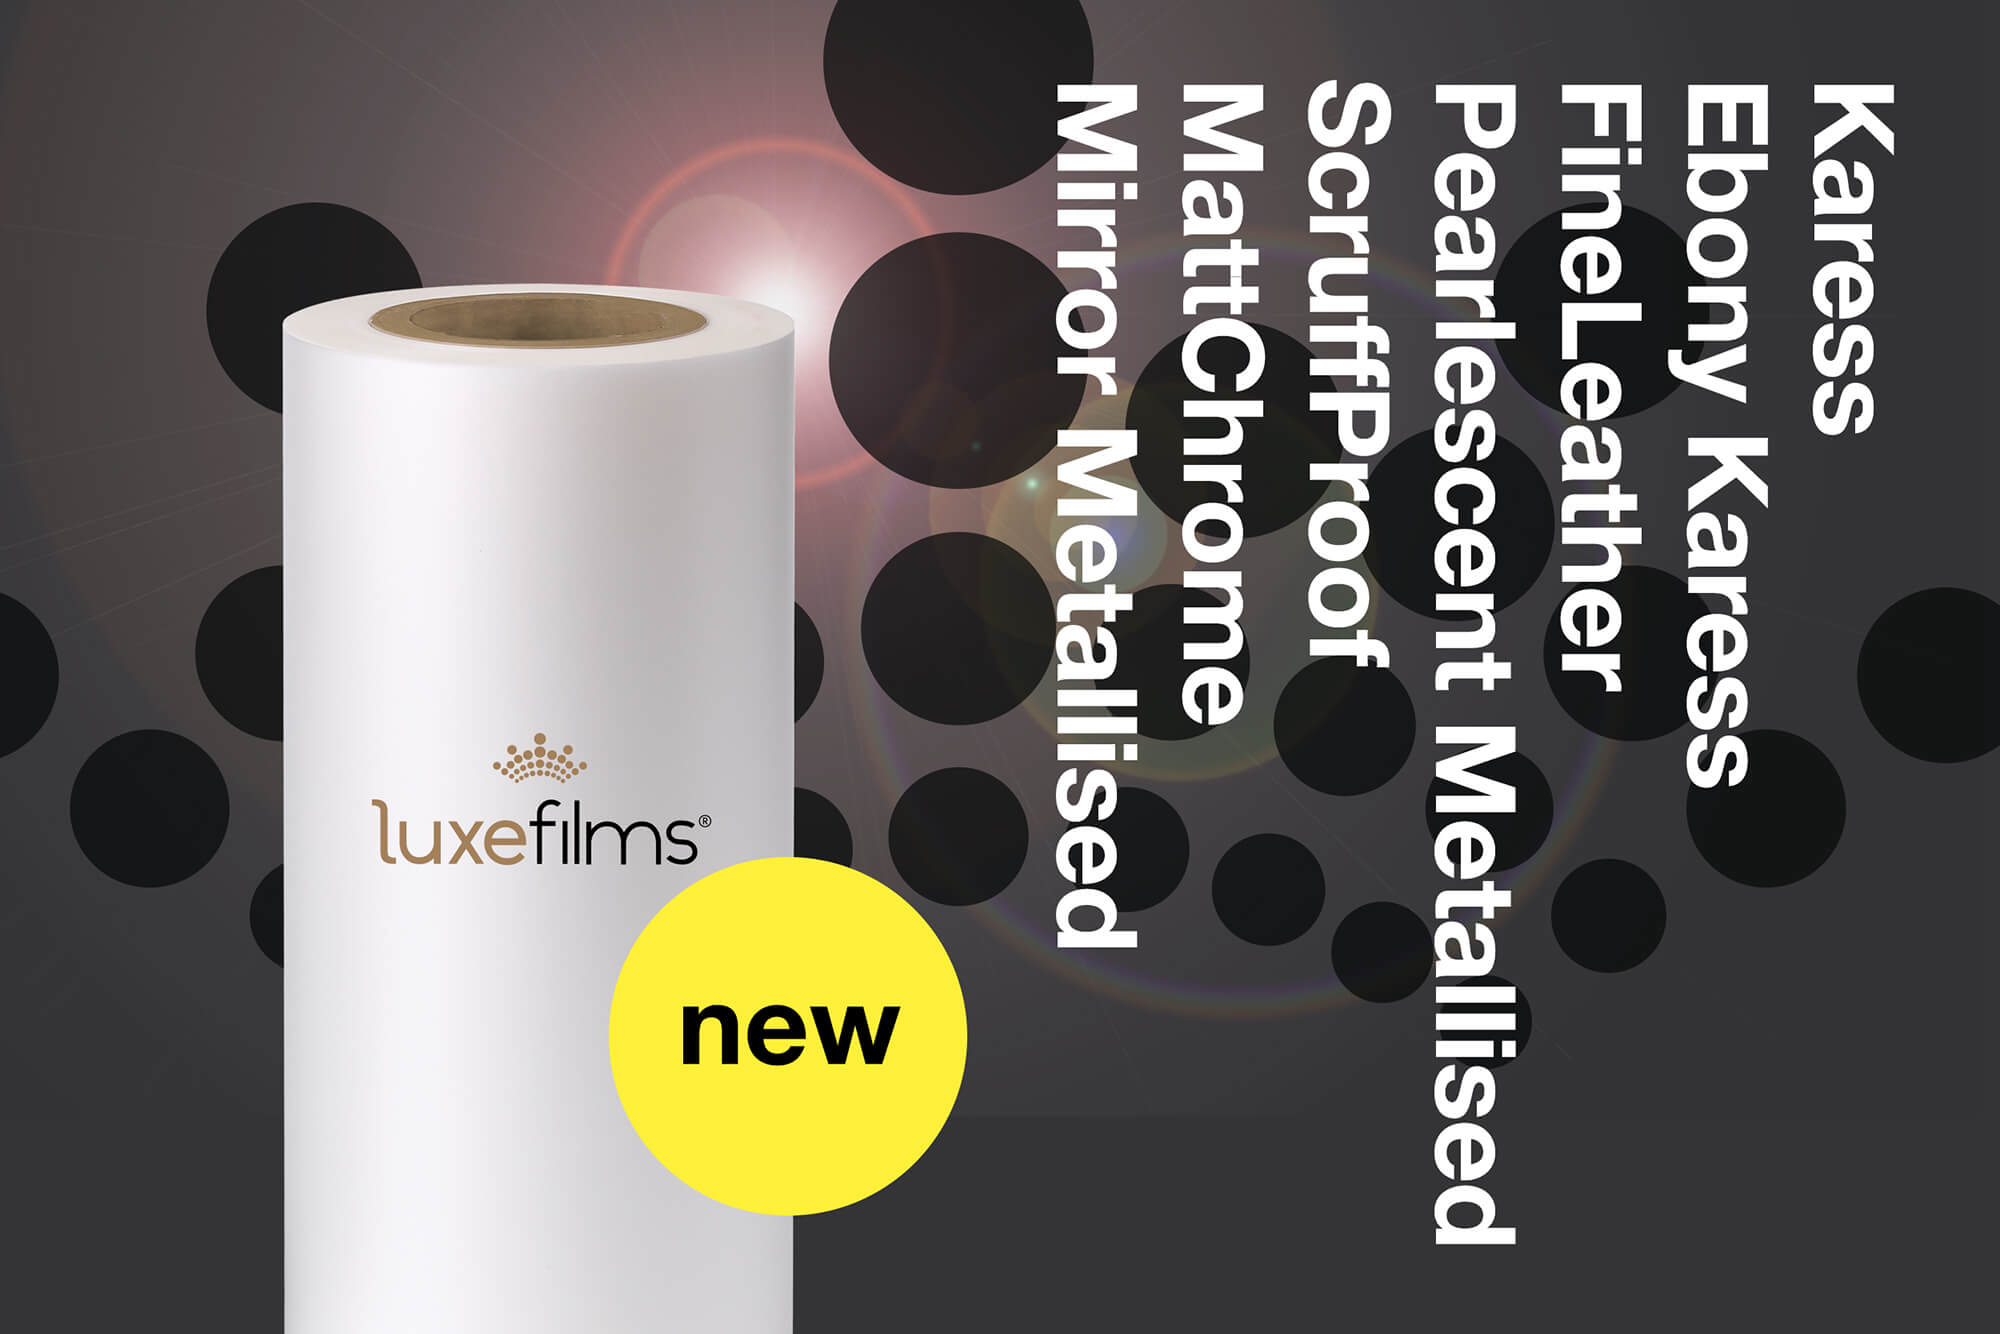 LuxeFilms-Range-LamLab-Laminating-Film-Consultancy-Service-Solutions-Post-Mailing